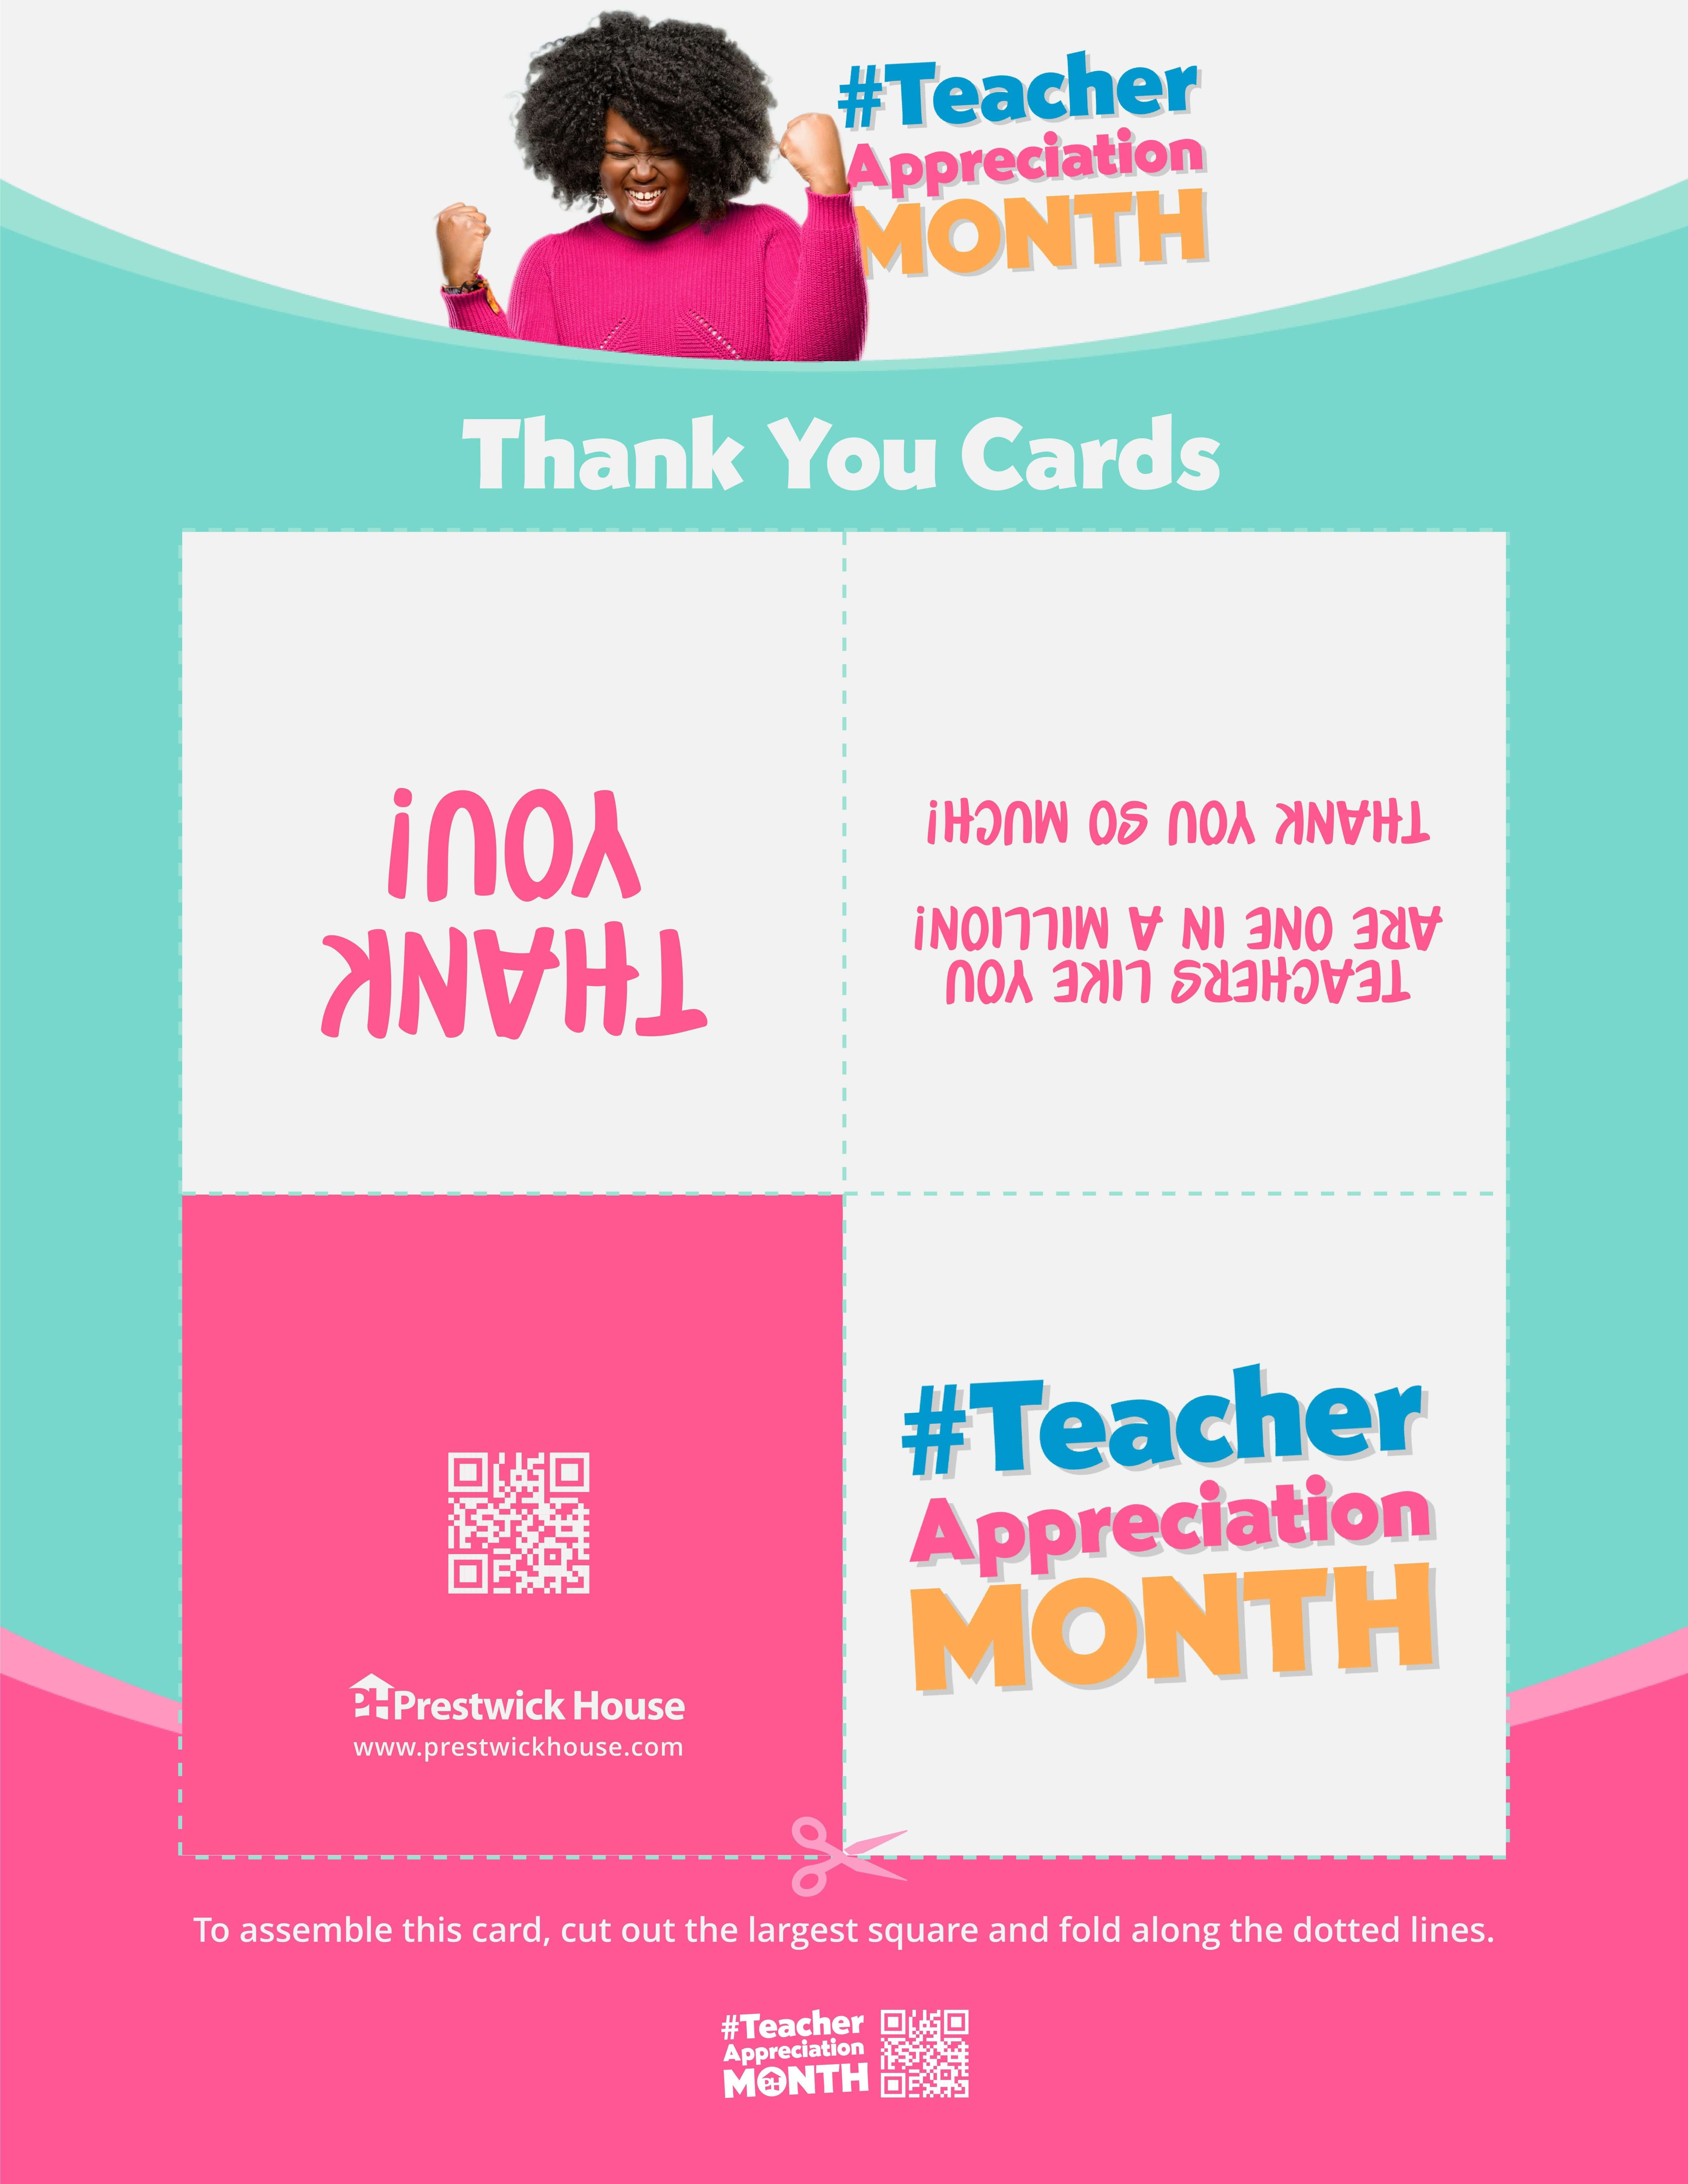 Teacher Appreciation Month - Thank You Cards